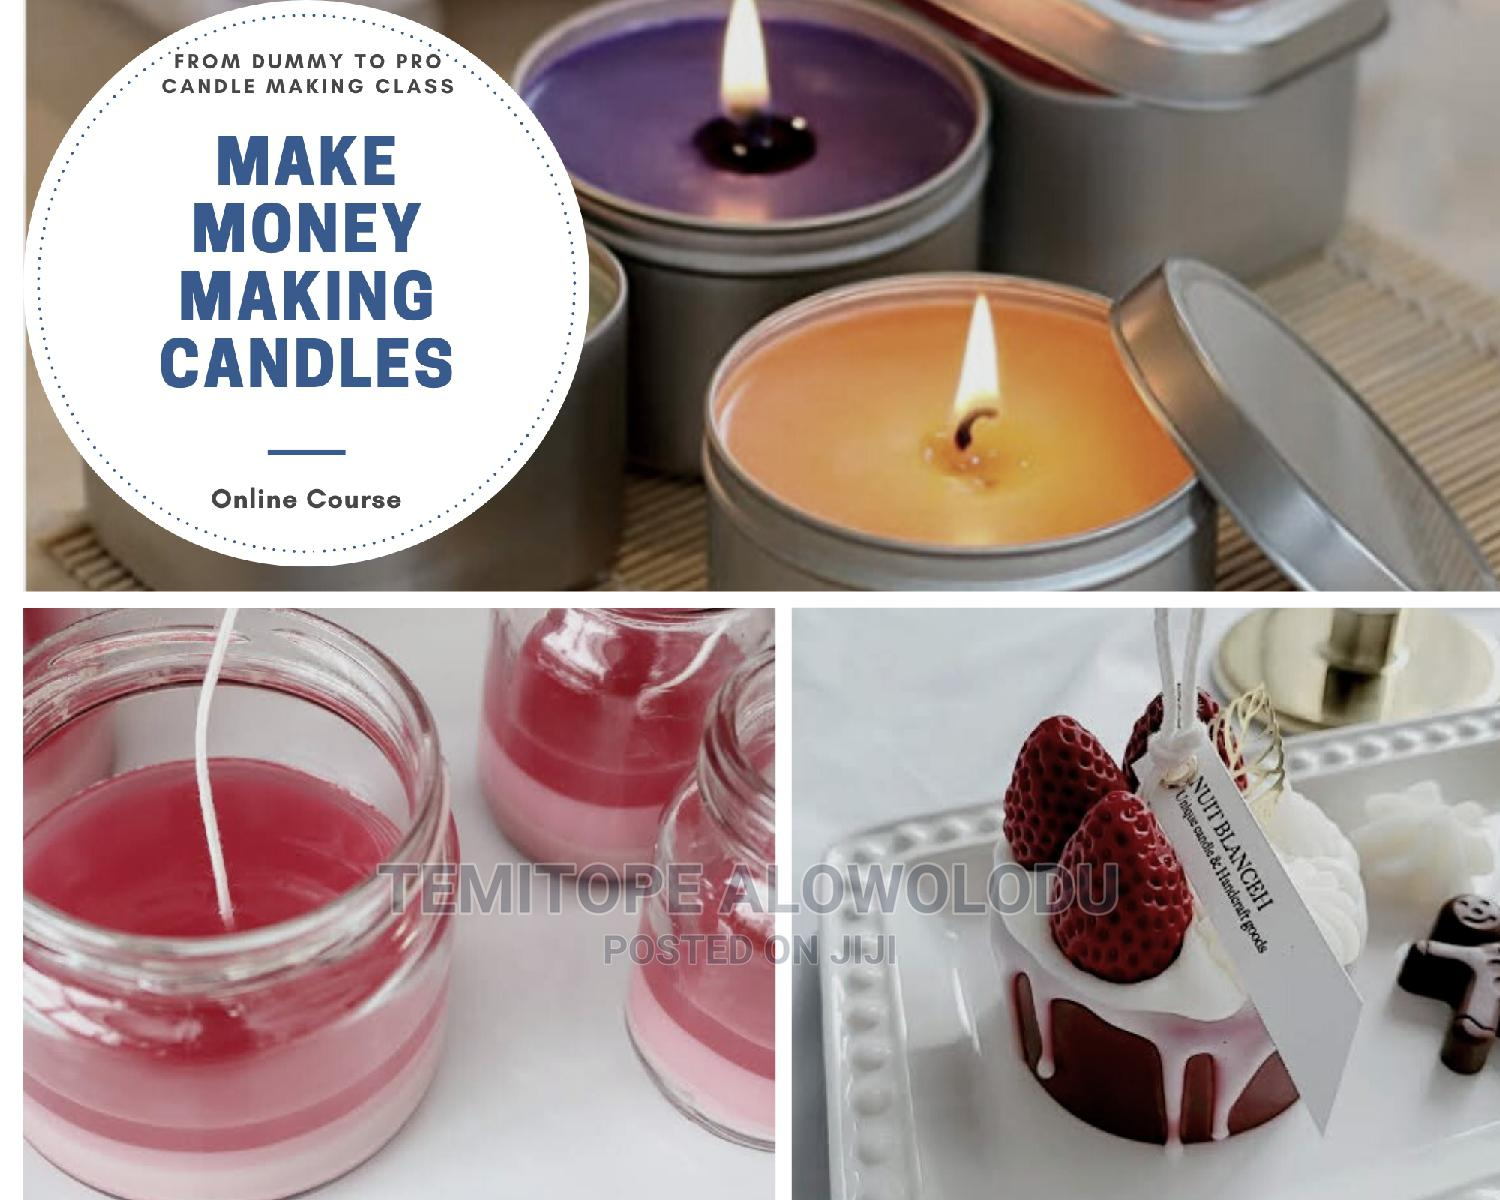 Archive: CANDLE MAKING CLASS(From Dummy to Pro)